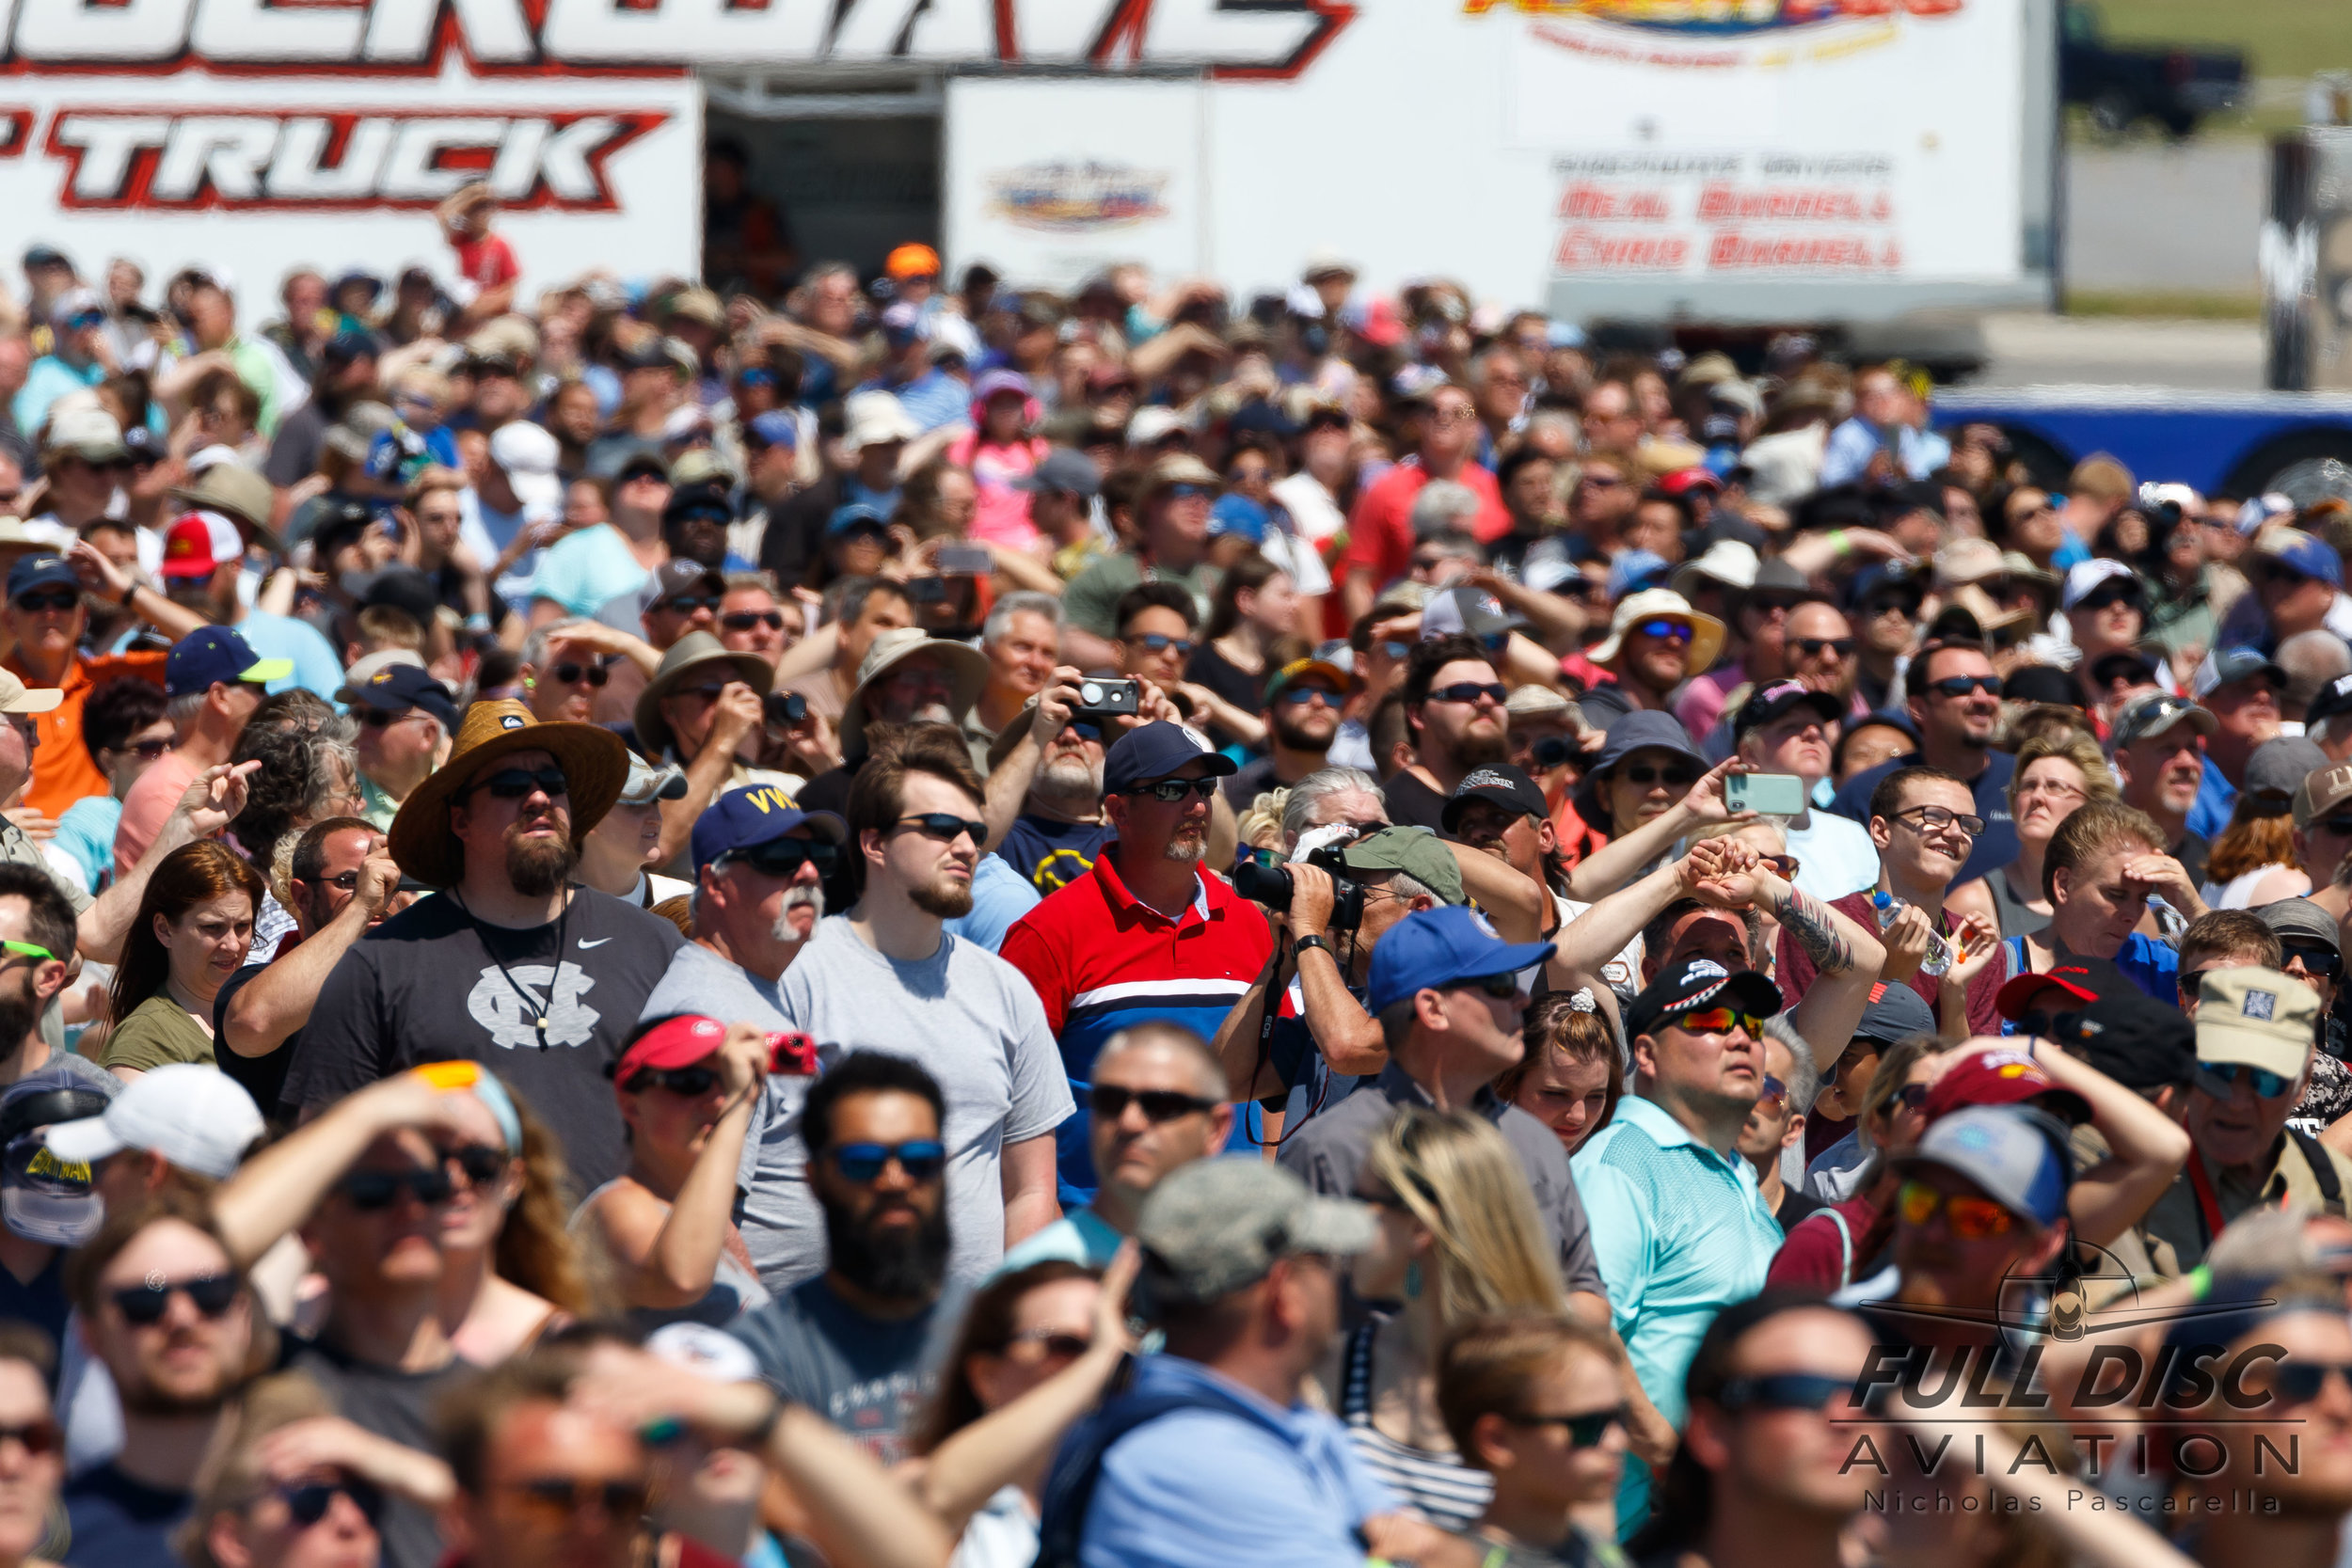 nicholaspascarella_fulldiscaviation_airshow_aviation_crowd_wingsoverwayne.jpg